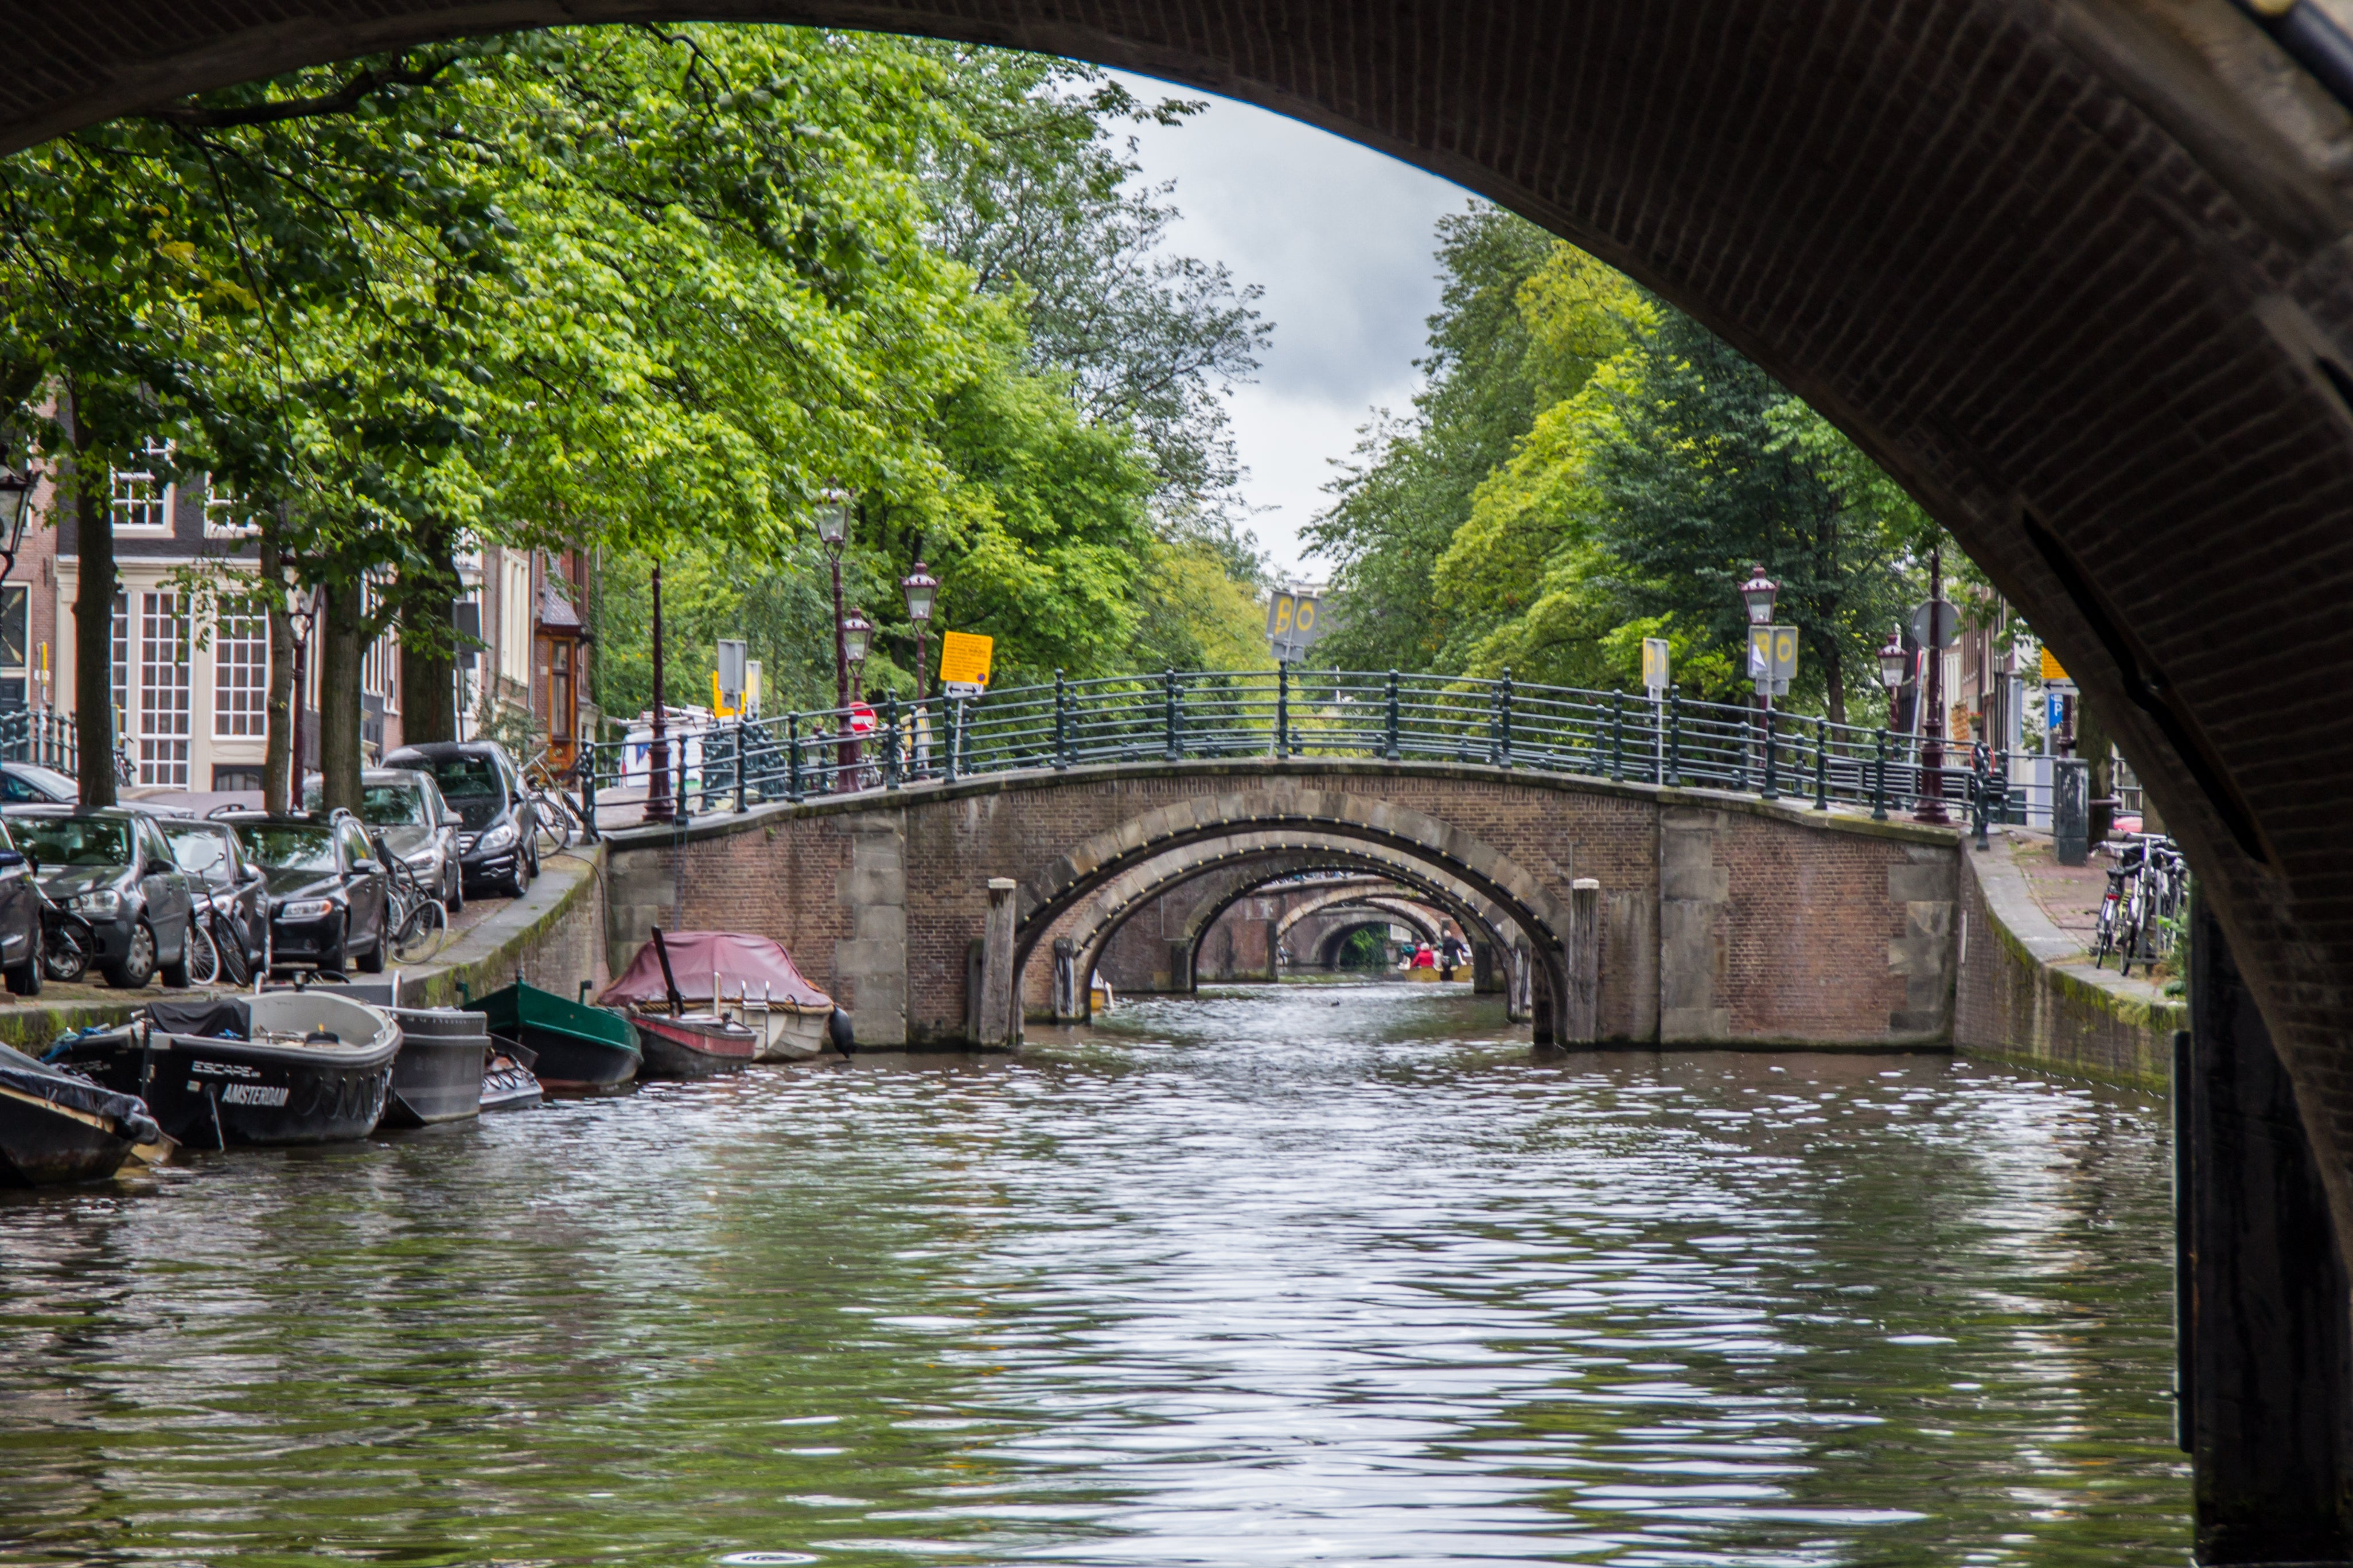 Boat Trip on the Canals